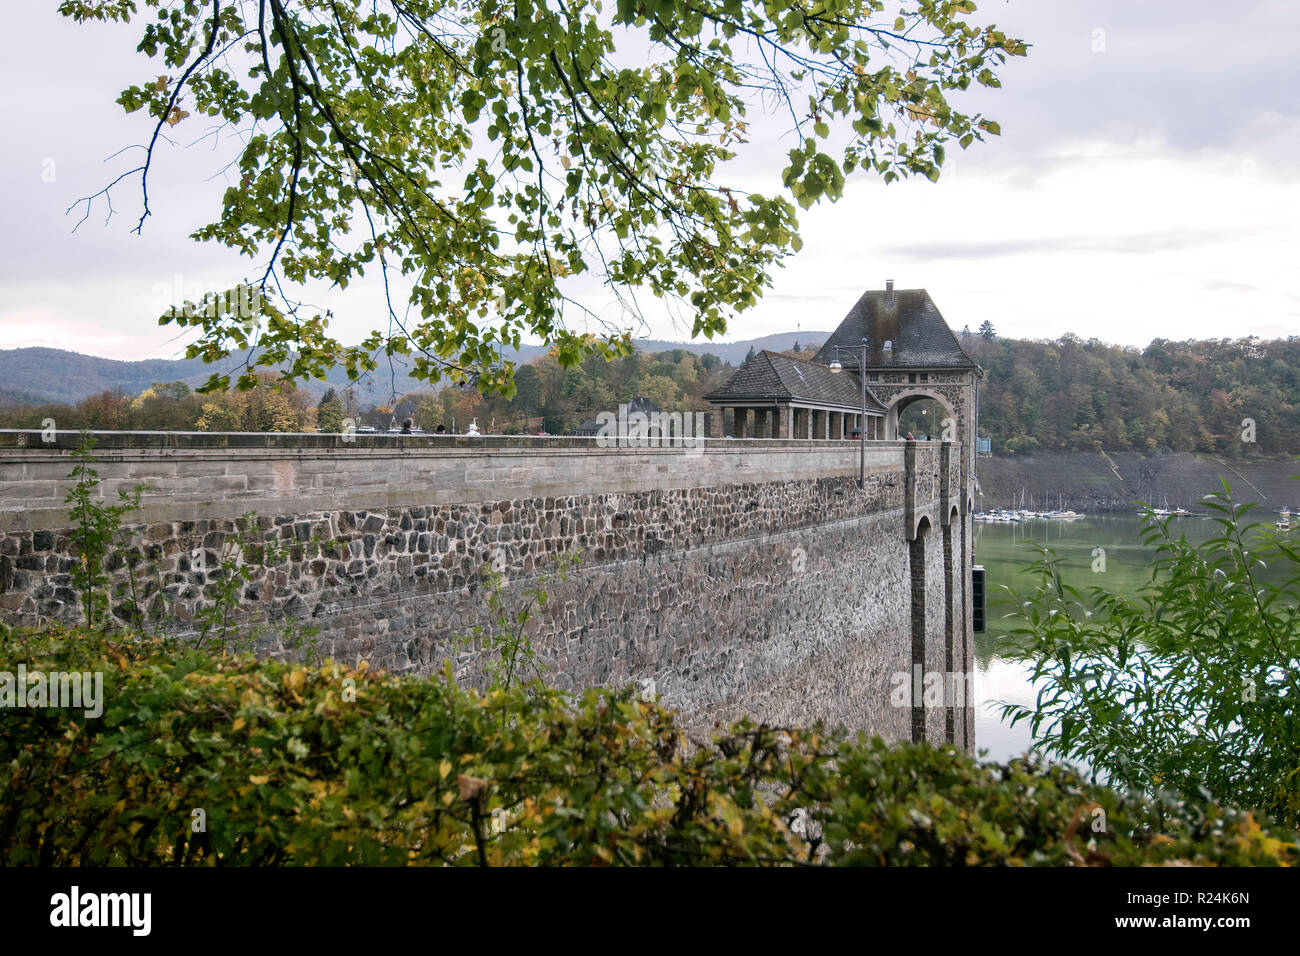 Dam wall at the Edertal Lock, Kellerwald-Edersee National Park. - Stock Image